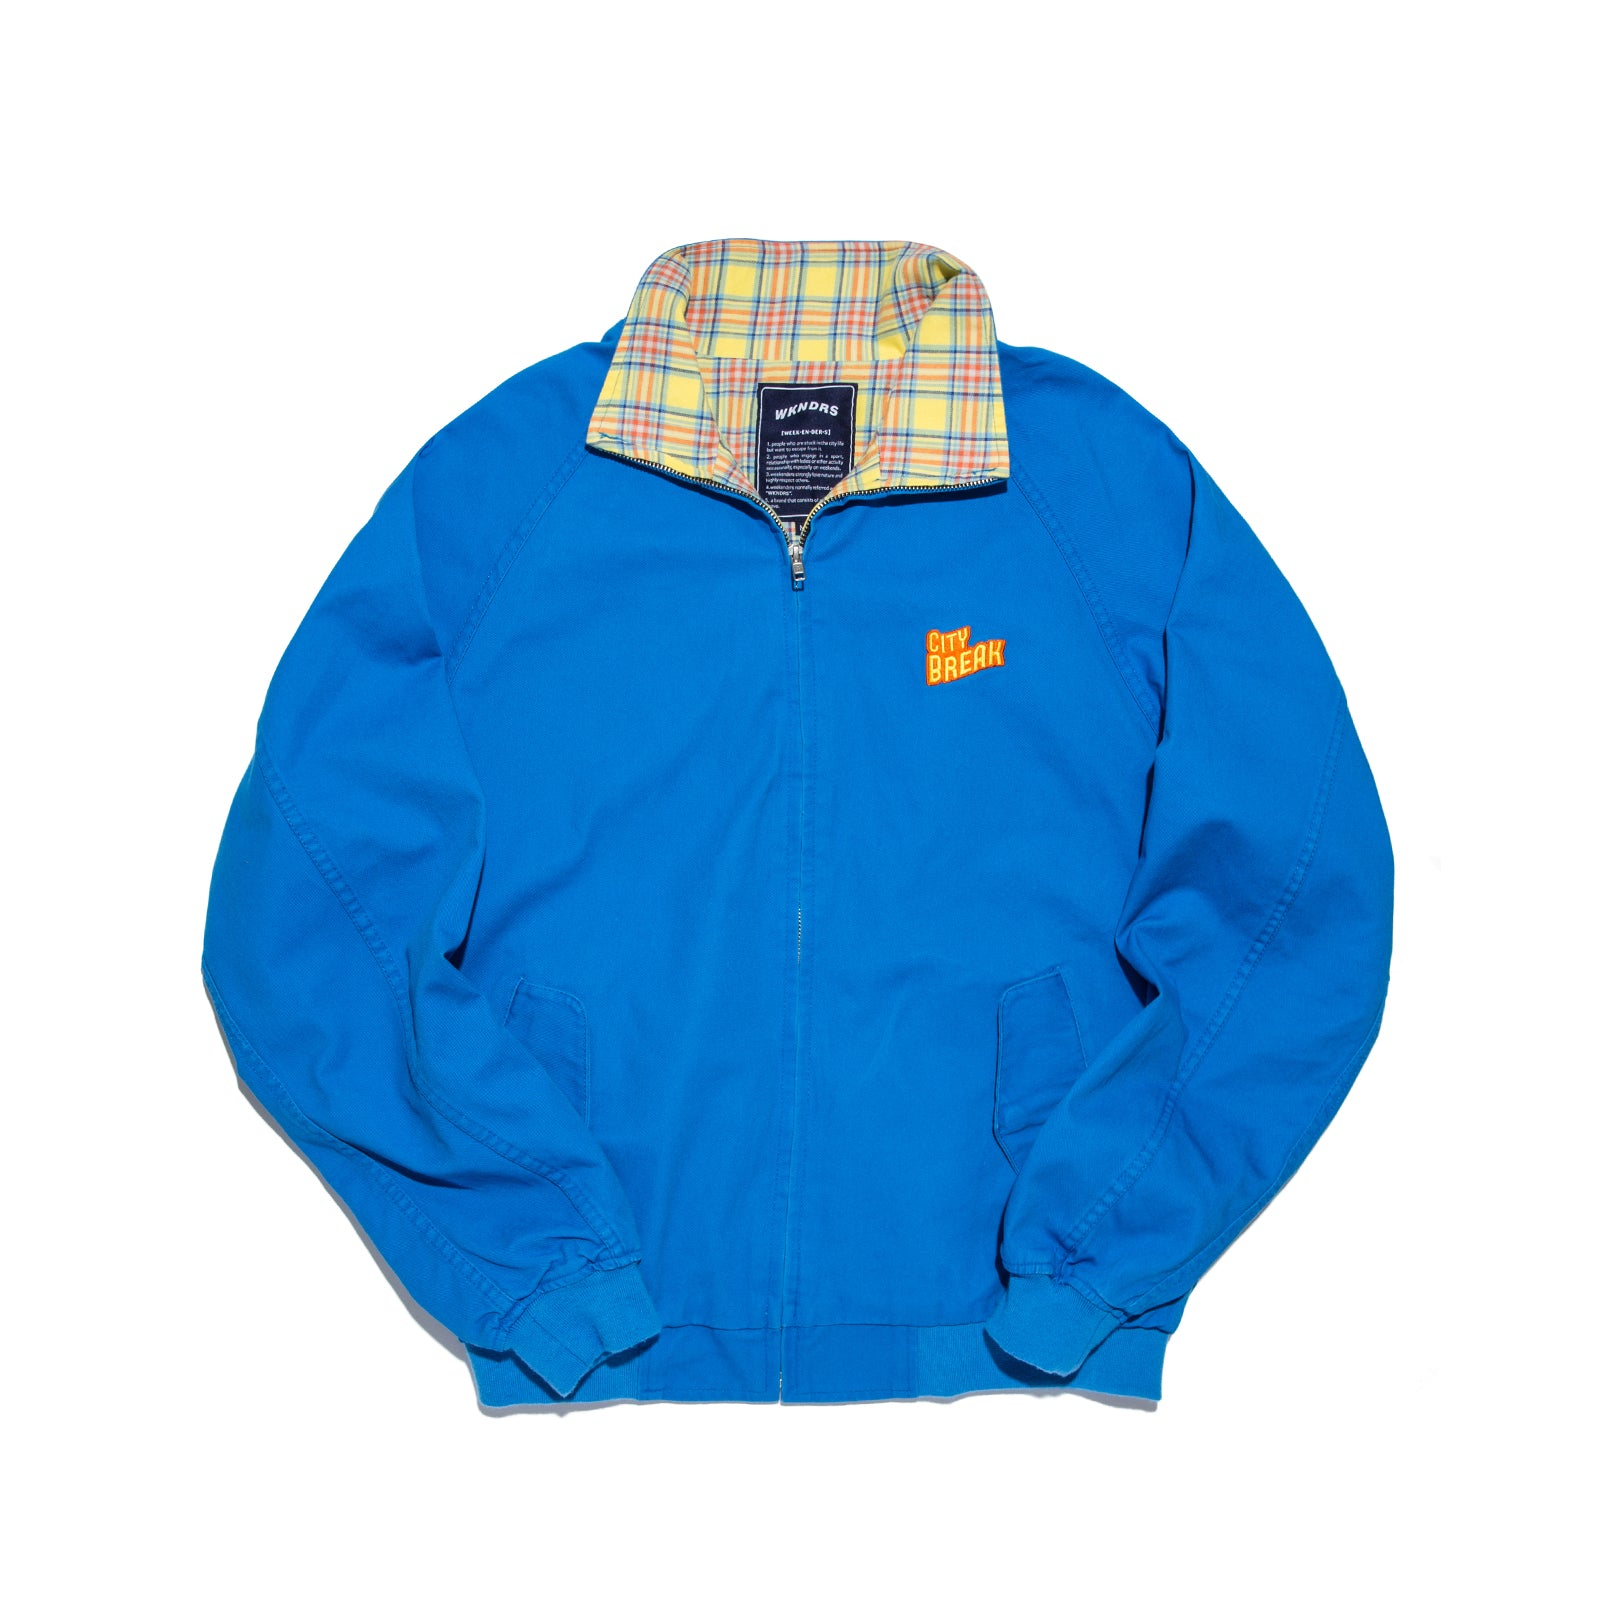 CITY BREAK BLOUSON (BLUE)